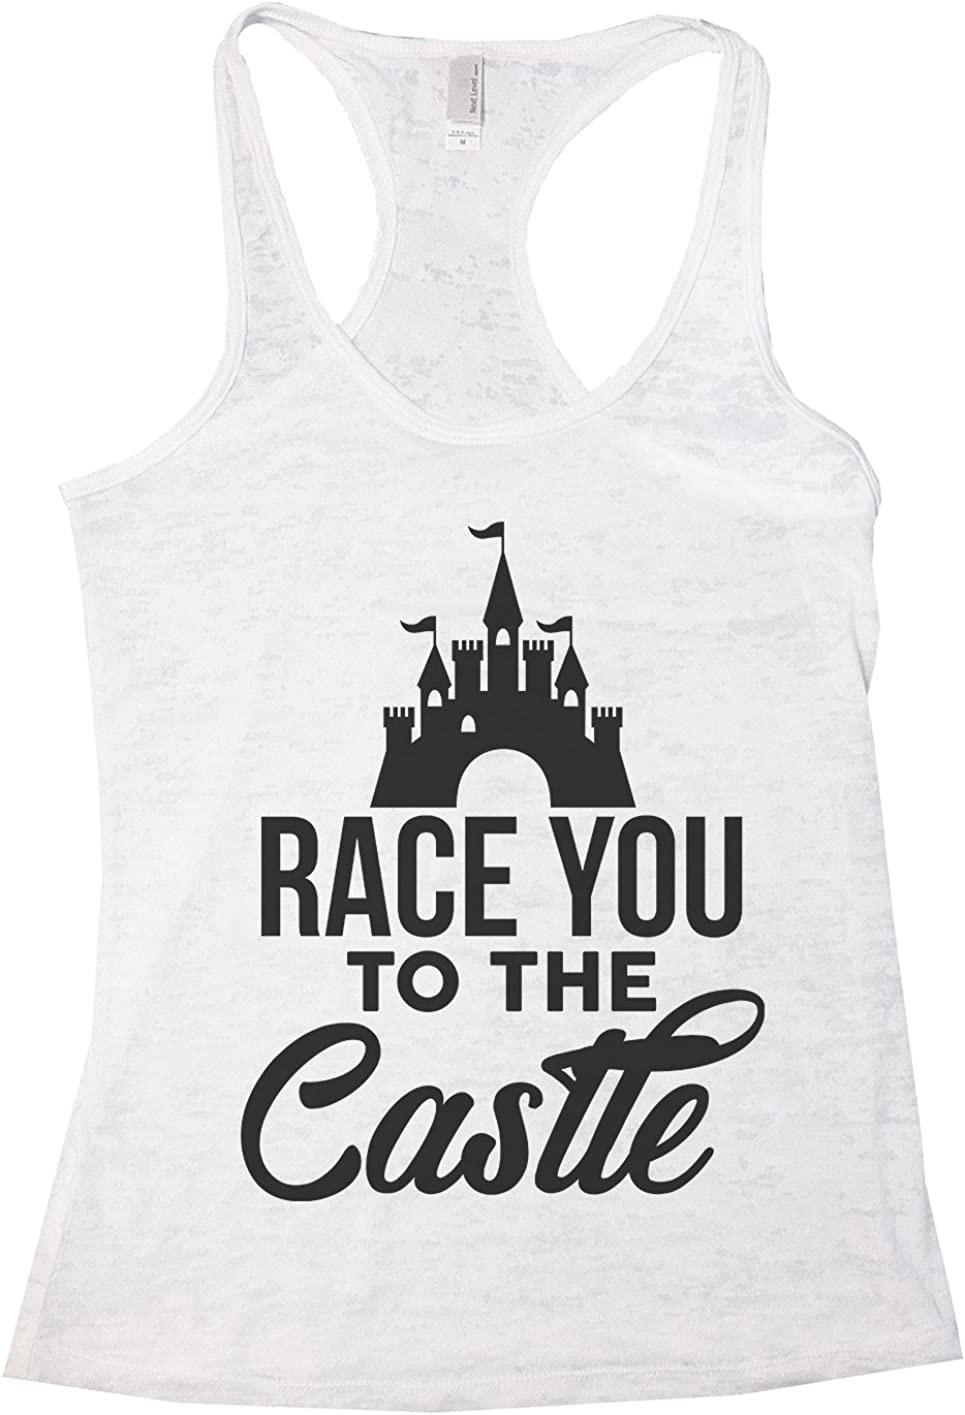 Amazon Com Womans Burnout Tank Top Race You To The Castle Disney Worlds Tank Top Clothing